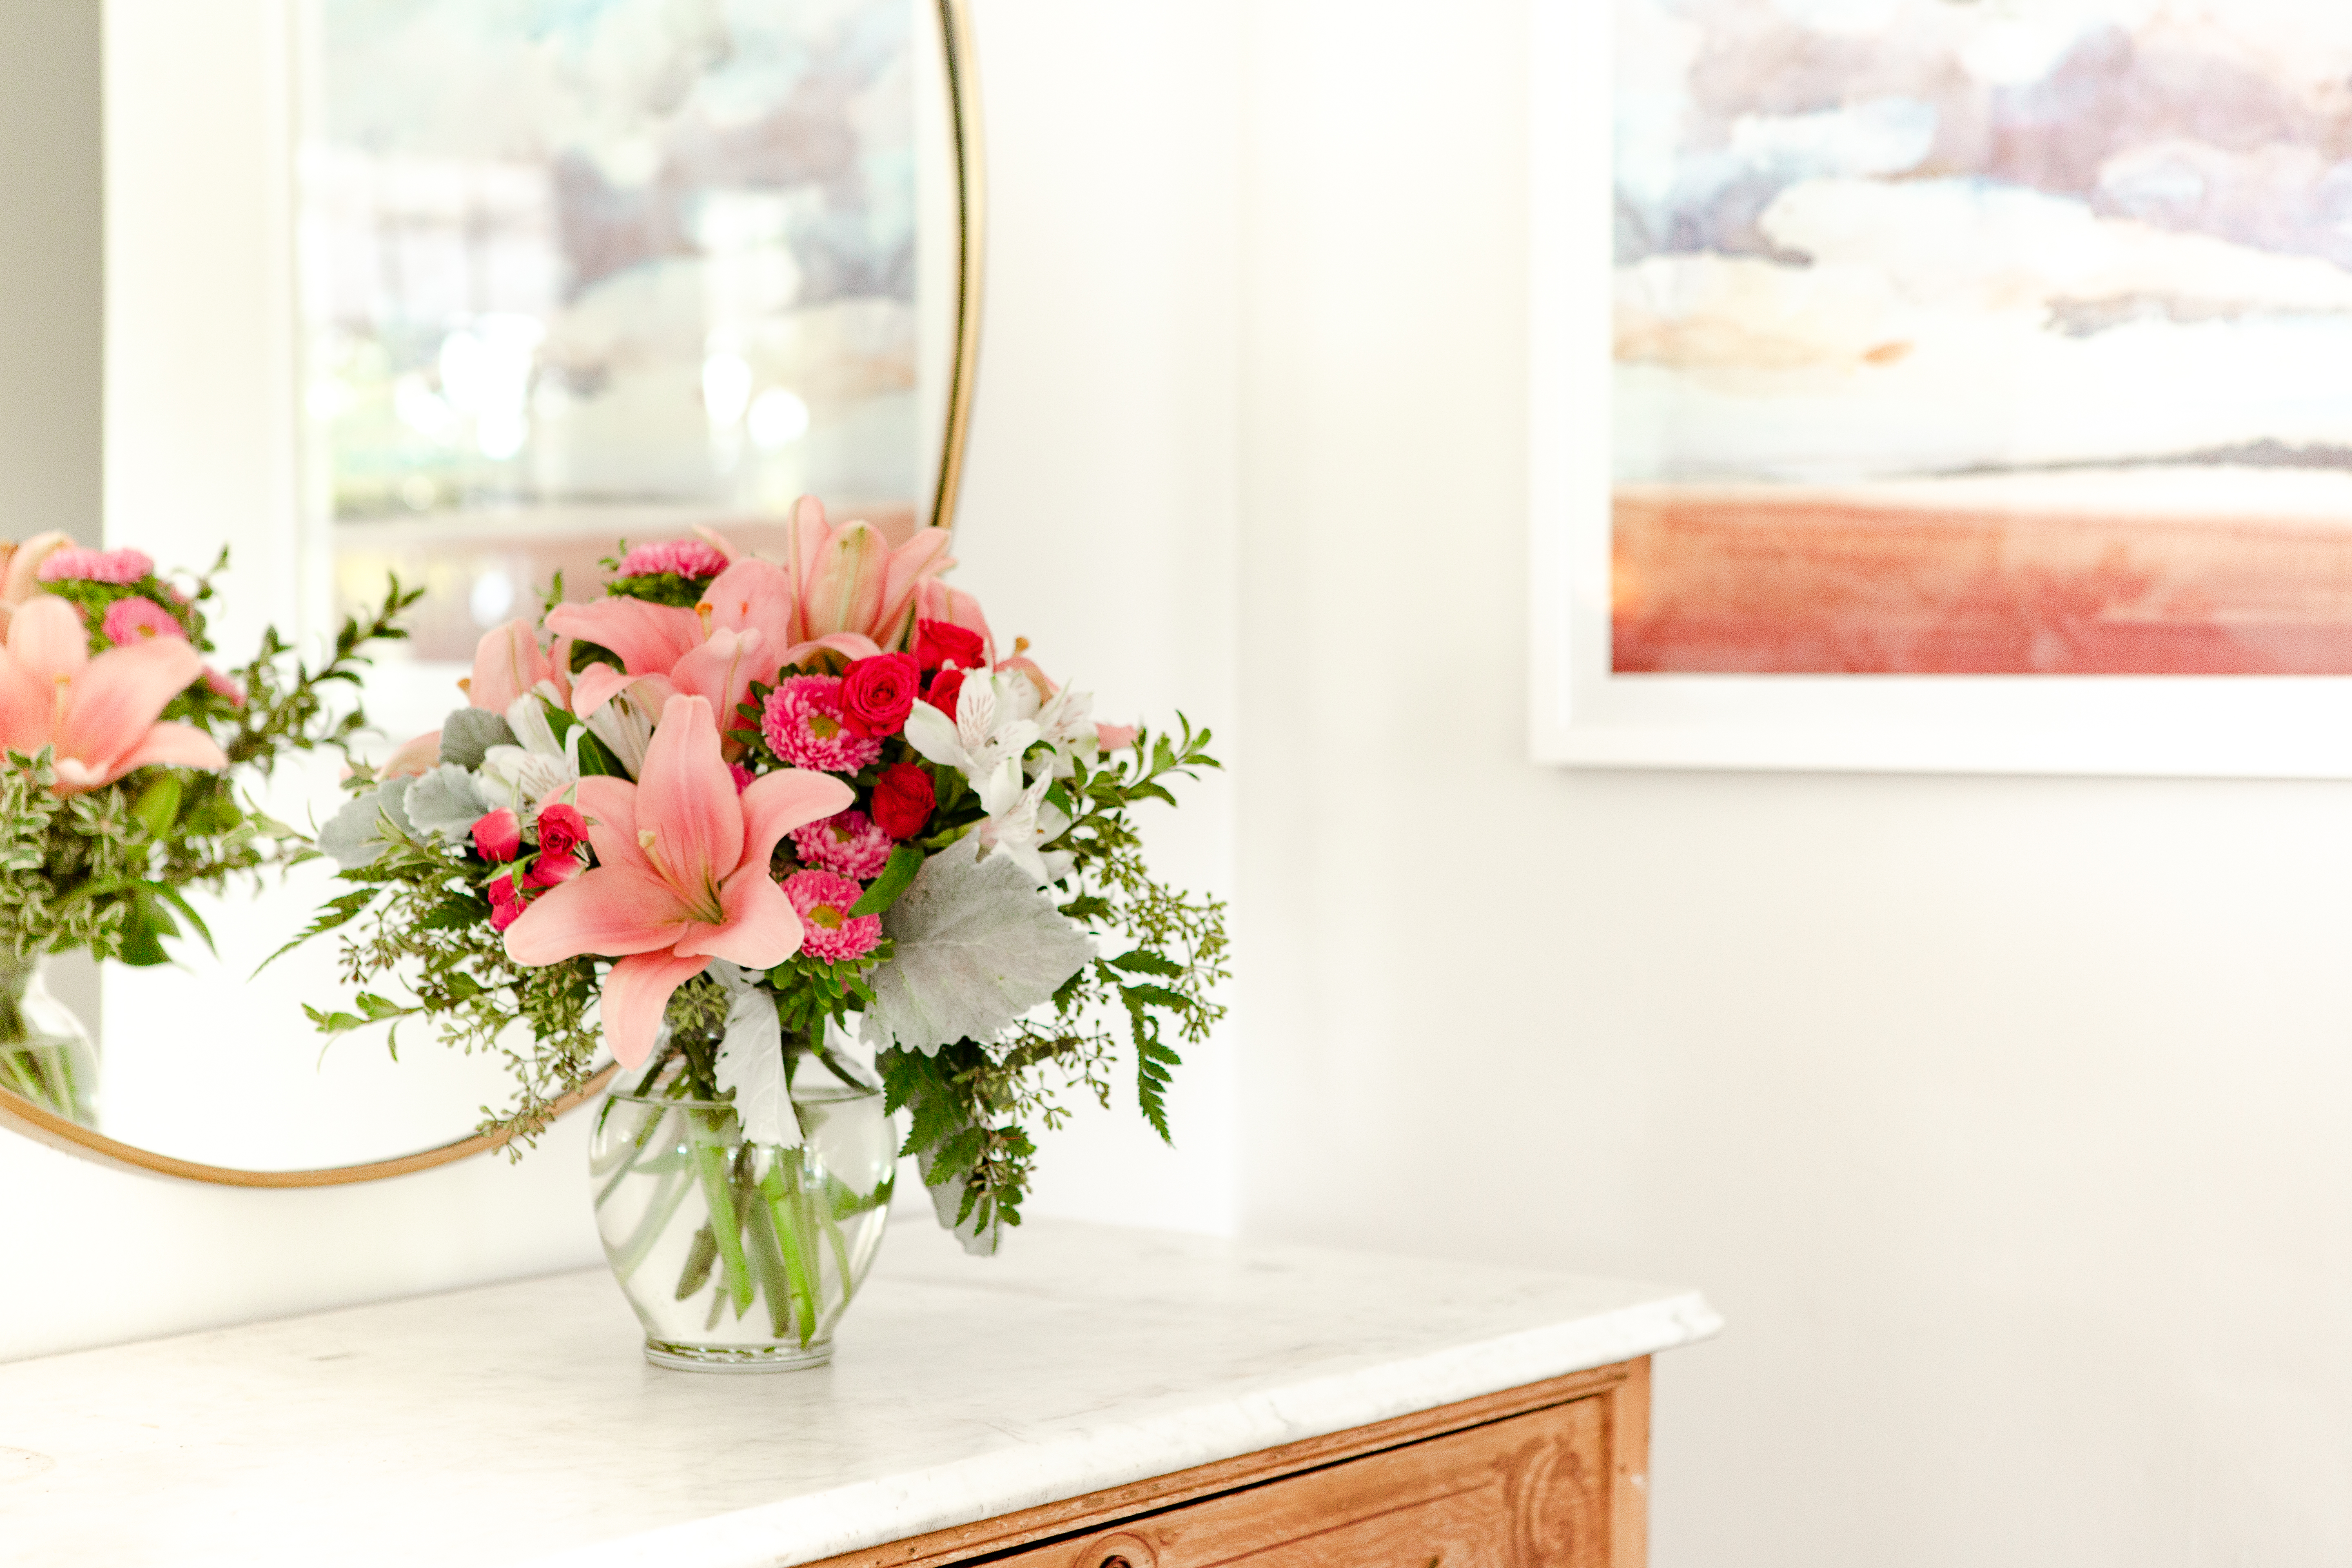 Pink lilies, pink asters, alstromeria, and dusty millar fill a clear vase on dresser next to mirror